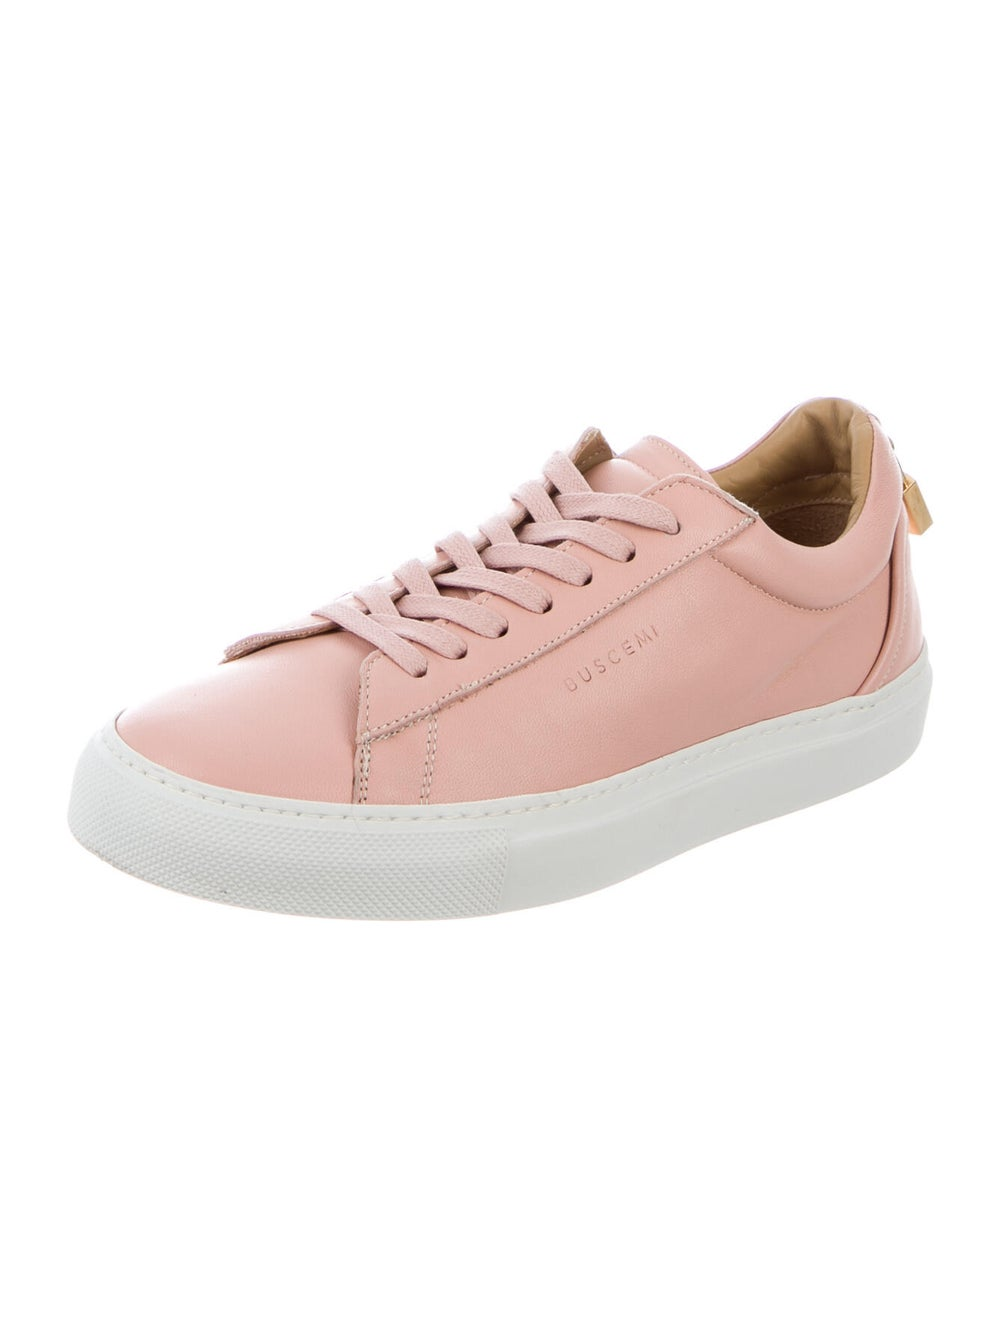 Buscemi Leather Sneakers Pink - image 2